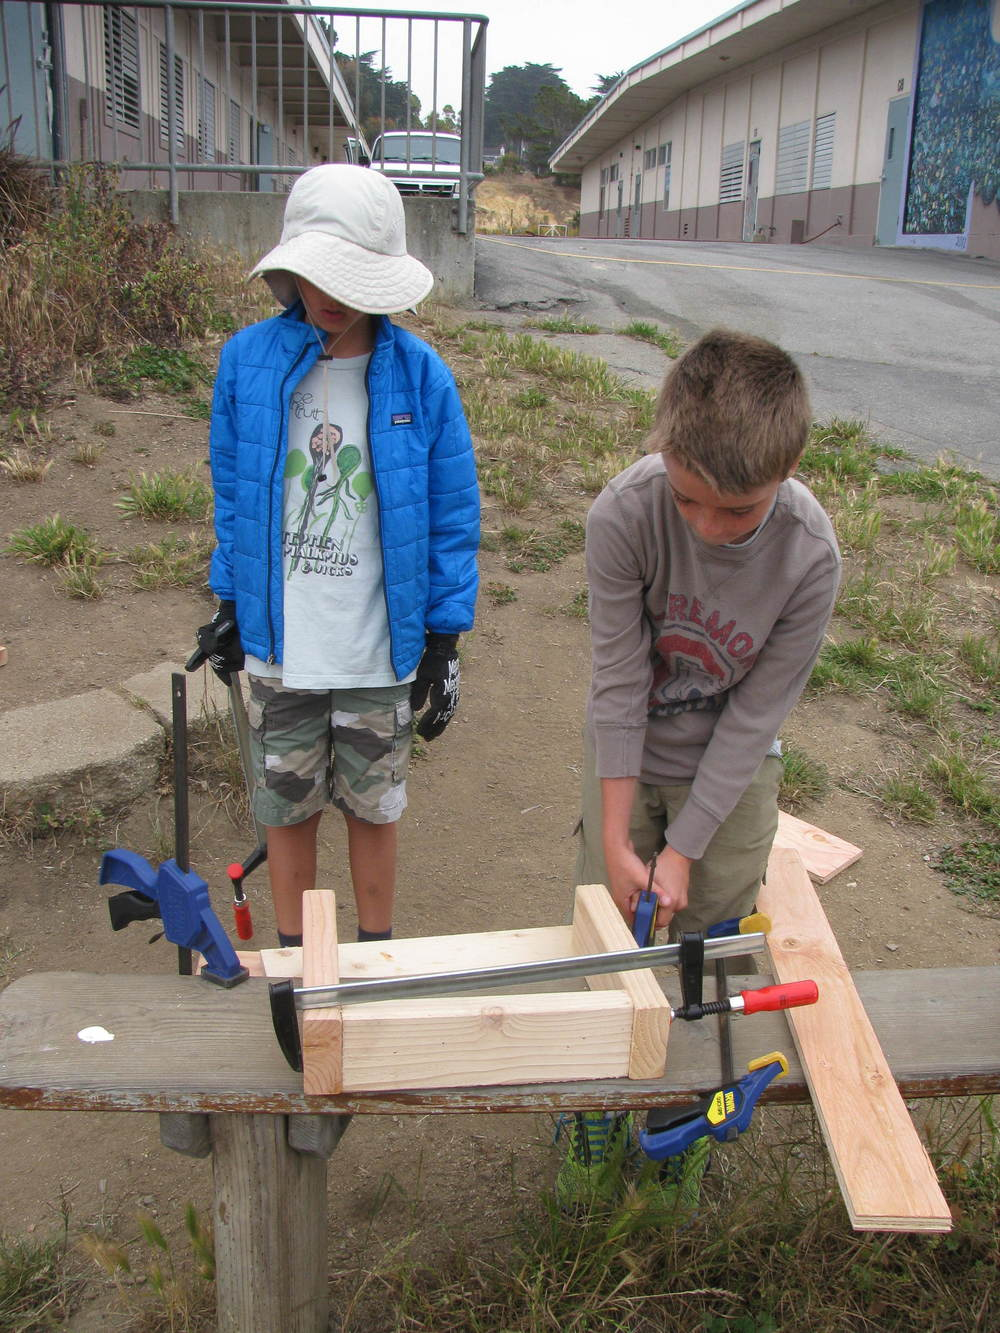 Lee and Jacob work on their clamping skills.